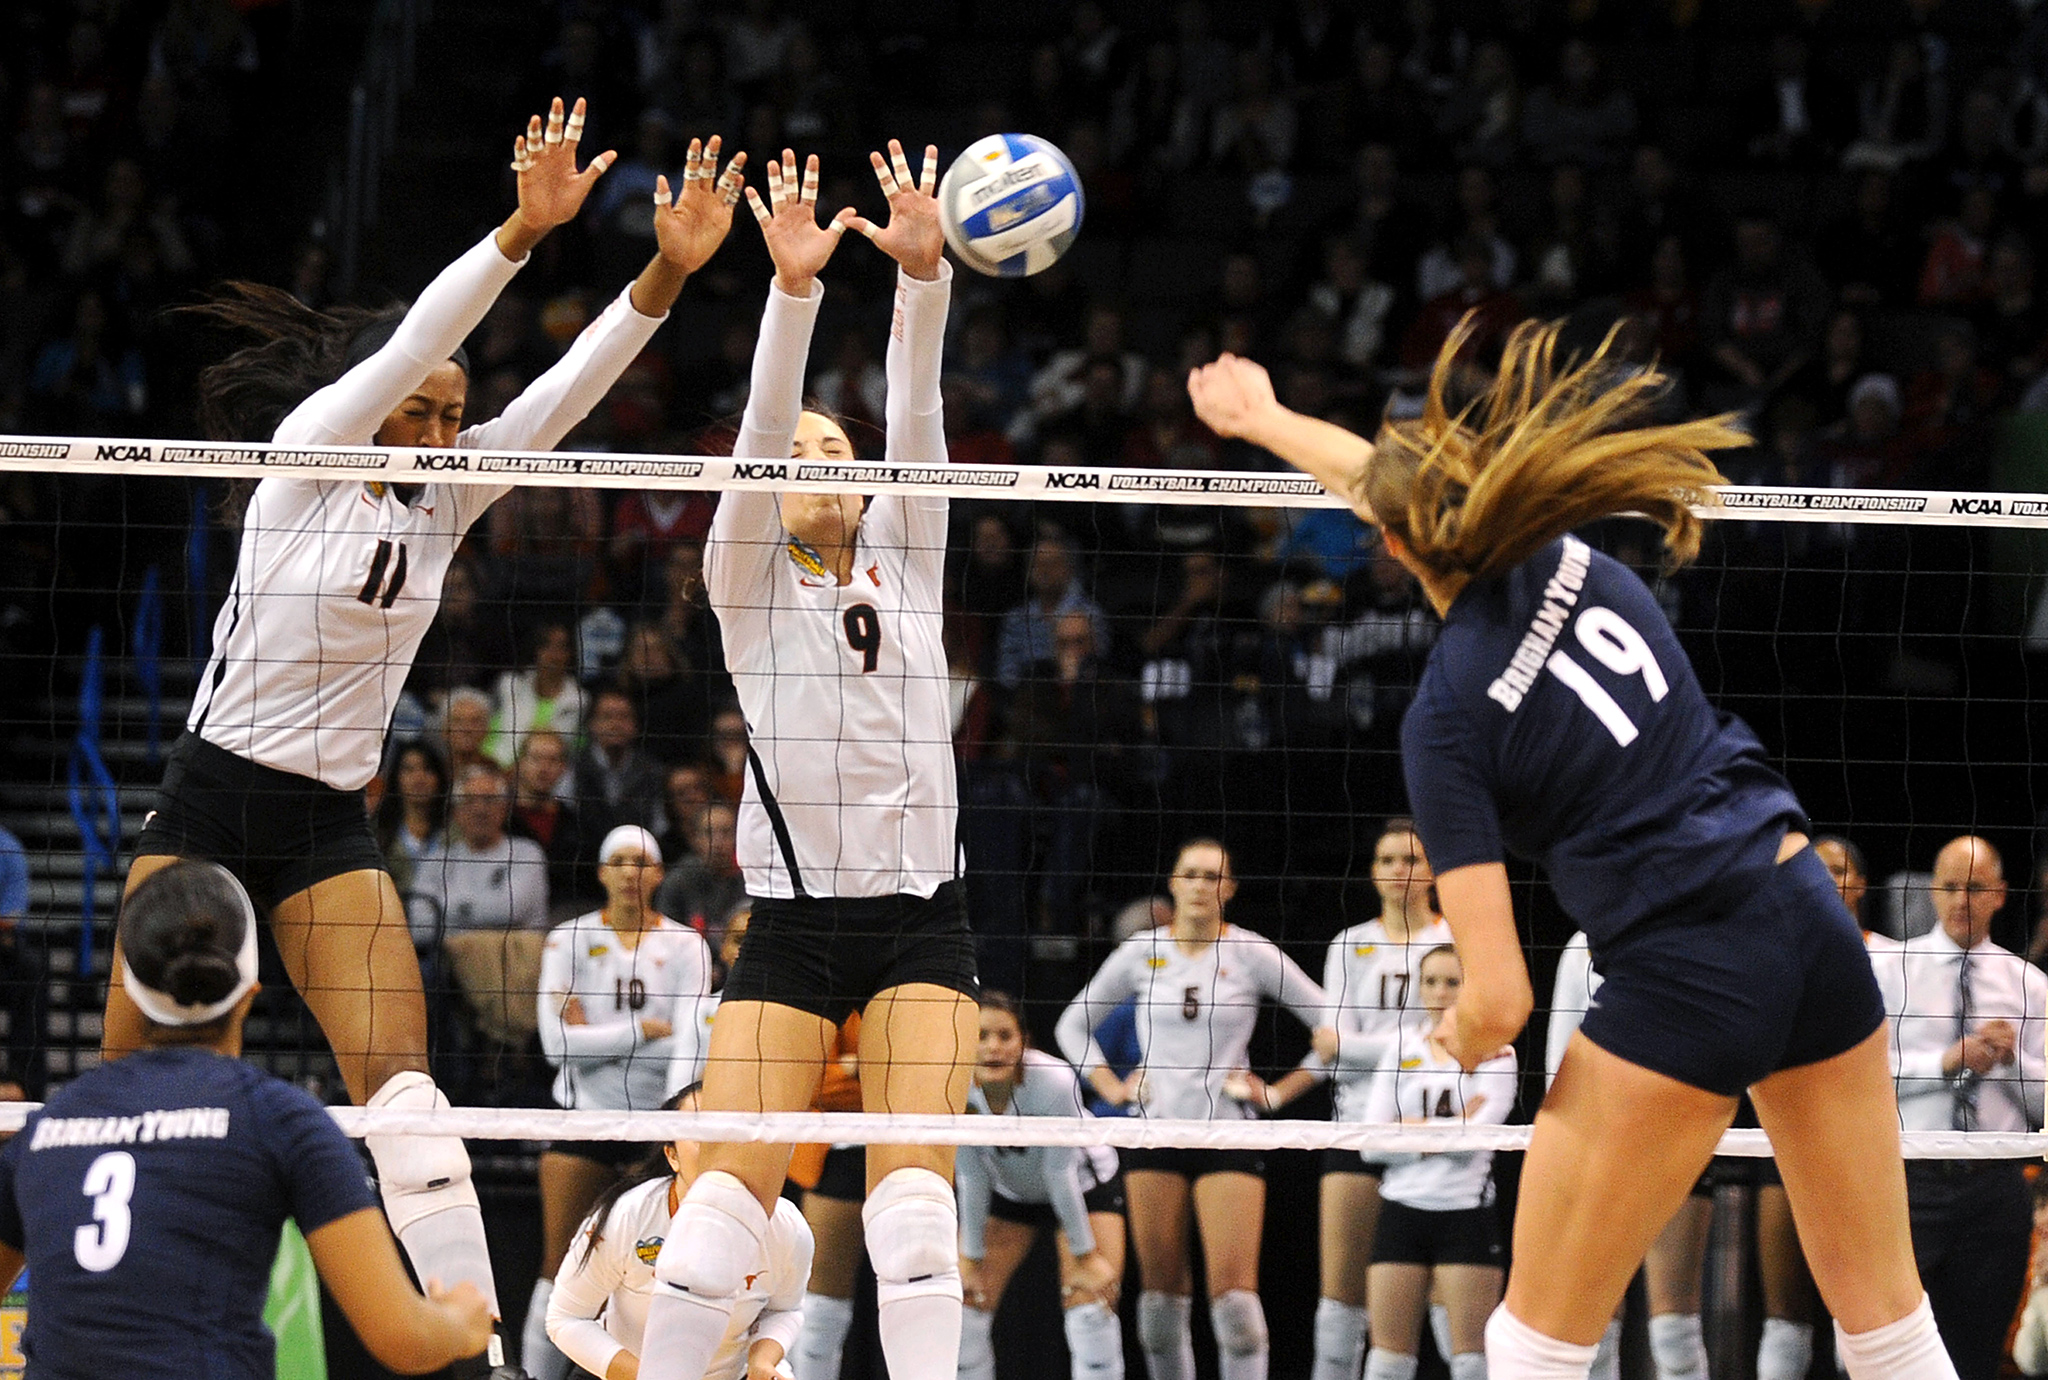 women's volleyball ncaa tournament 2019 - HD 2048×1380